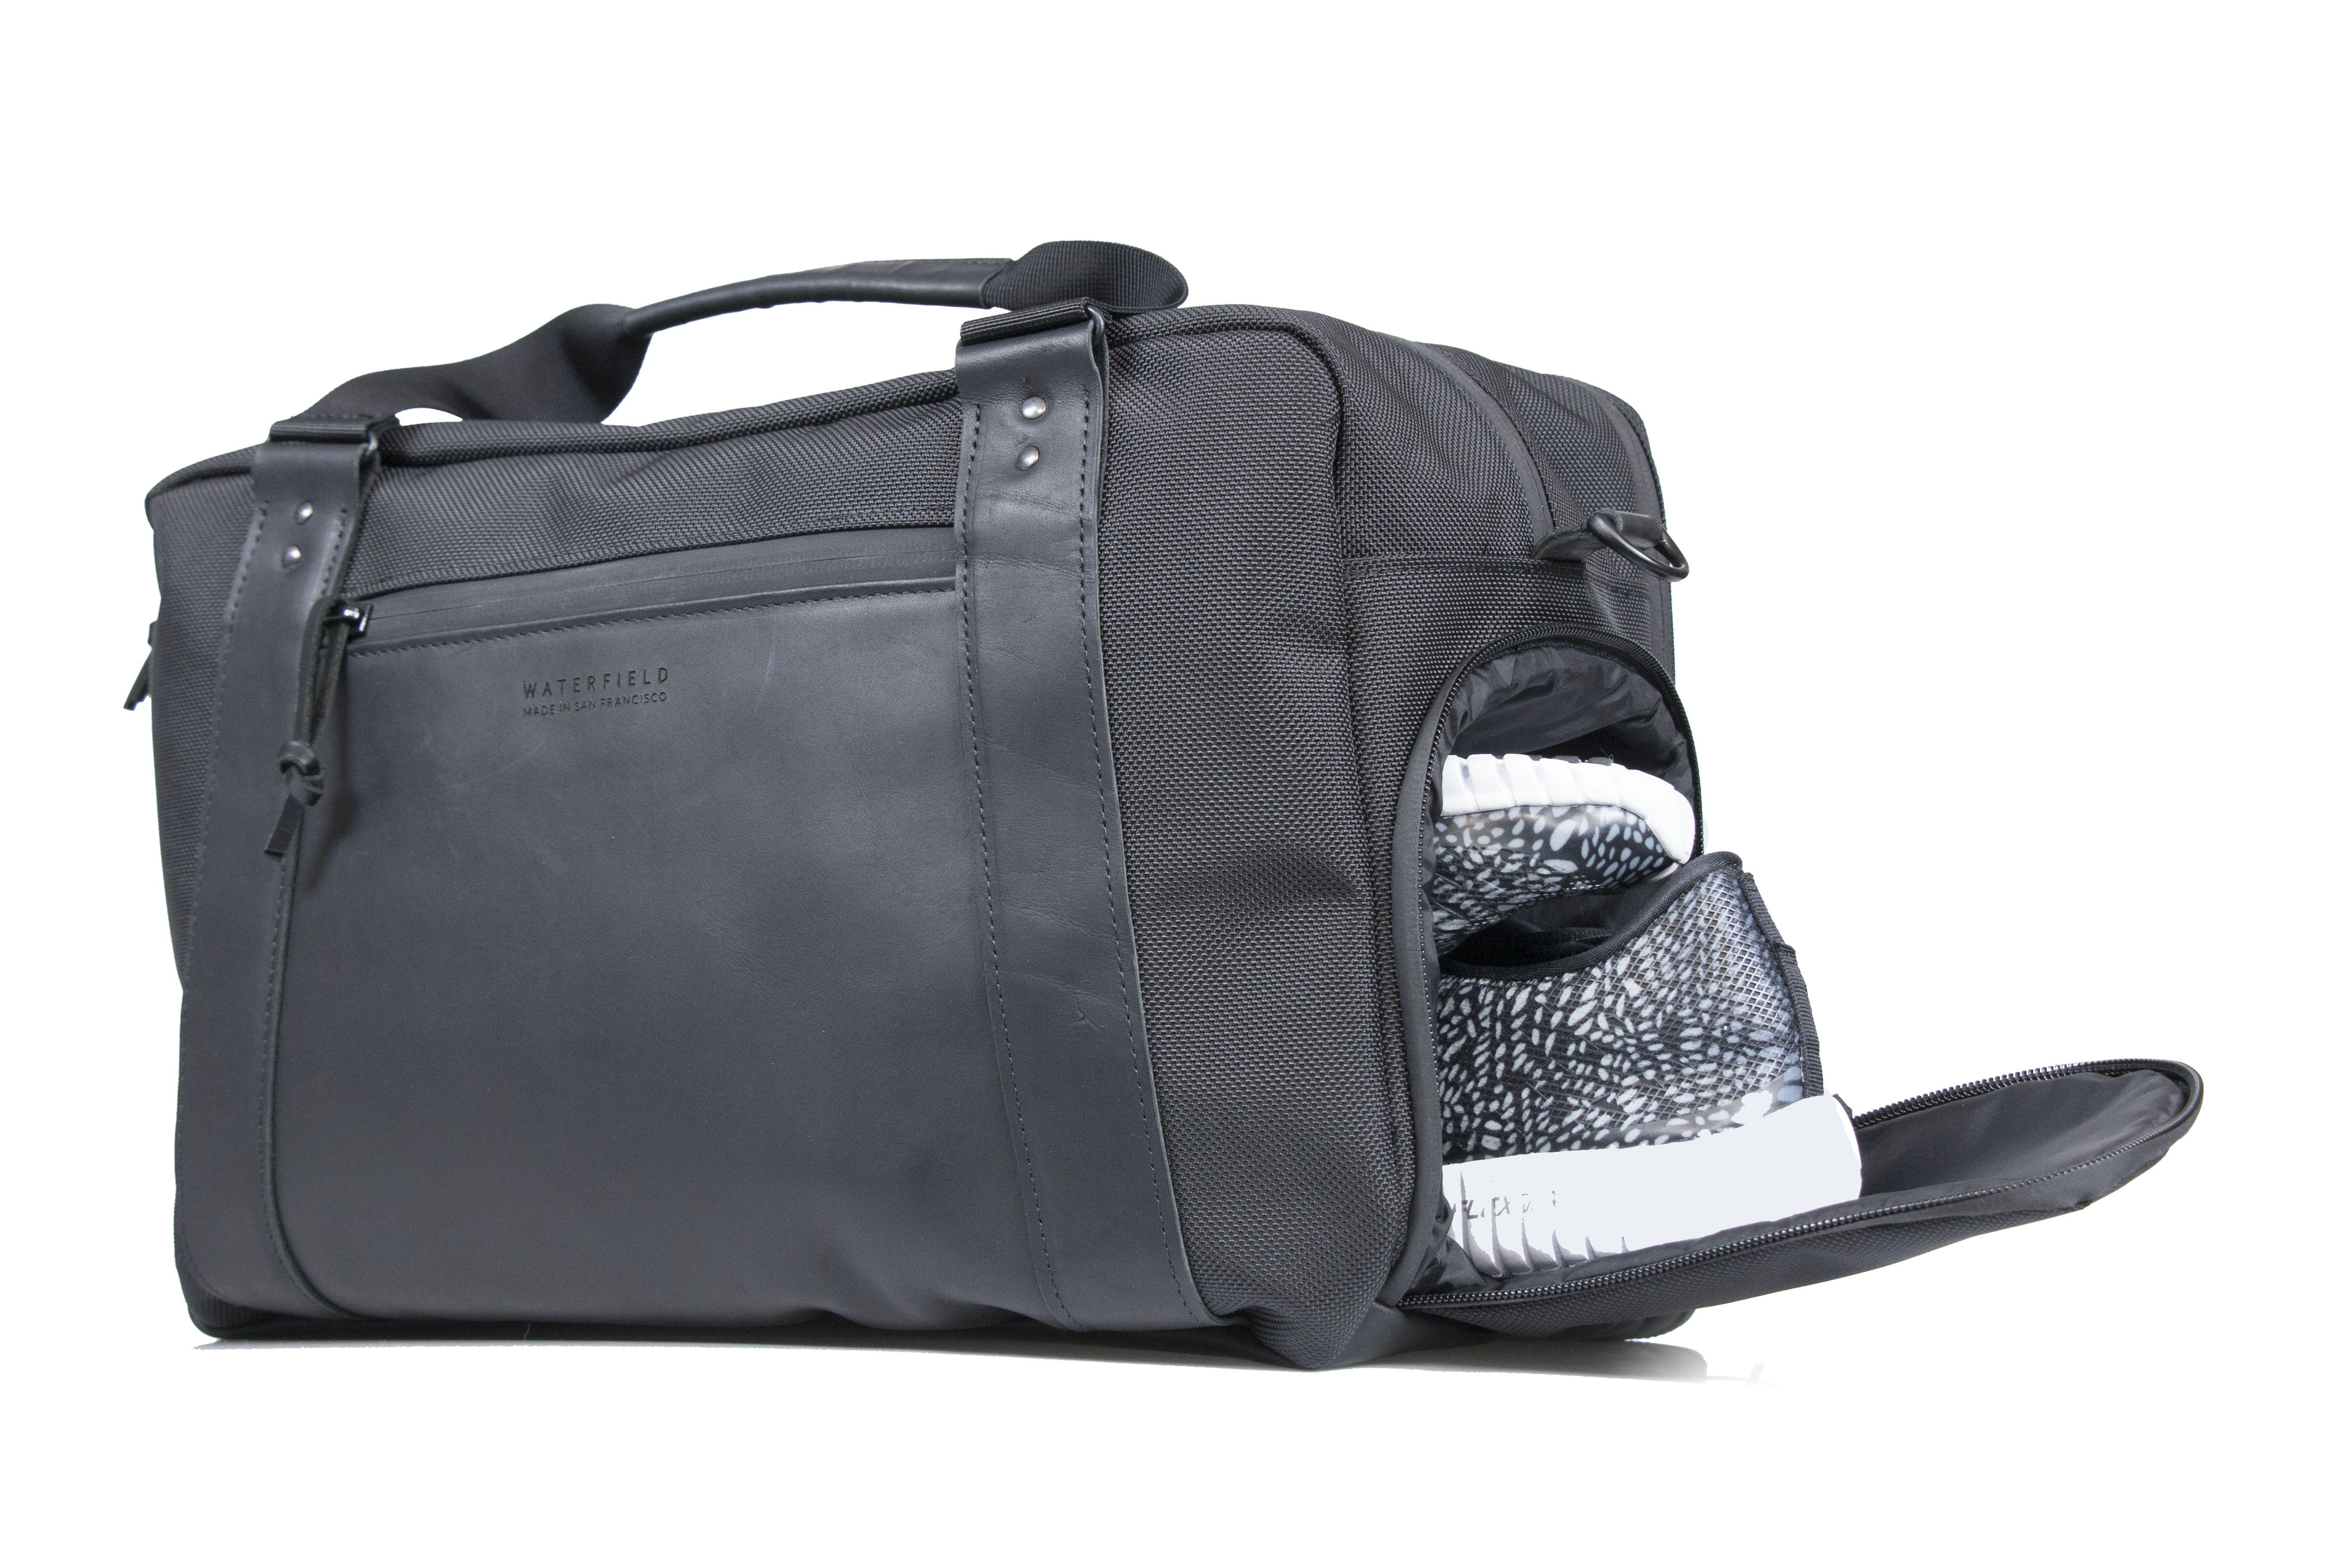 e5eedc4ef1 ... charge laptop while protected inside padded sleeve Atlas Executive  Athletic Holdall — shoe compartment Atlas Executive Athletic Holdall— shoe  ...